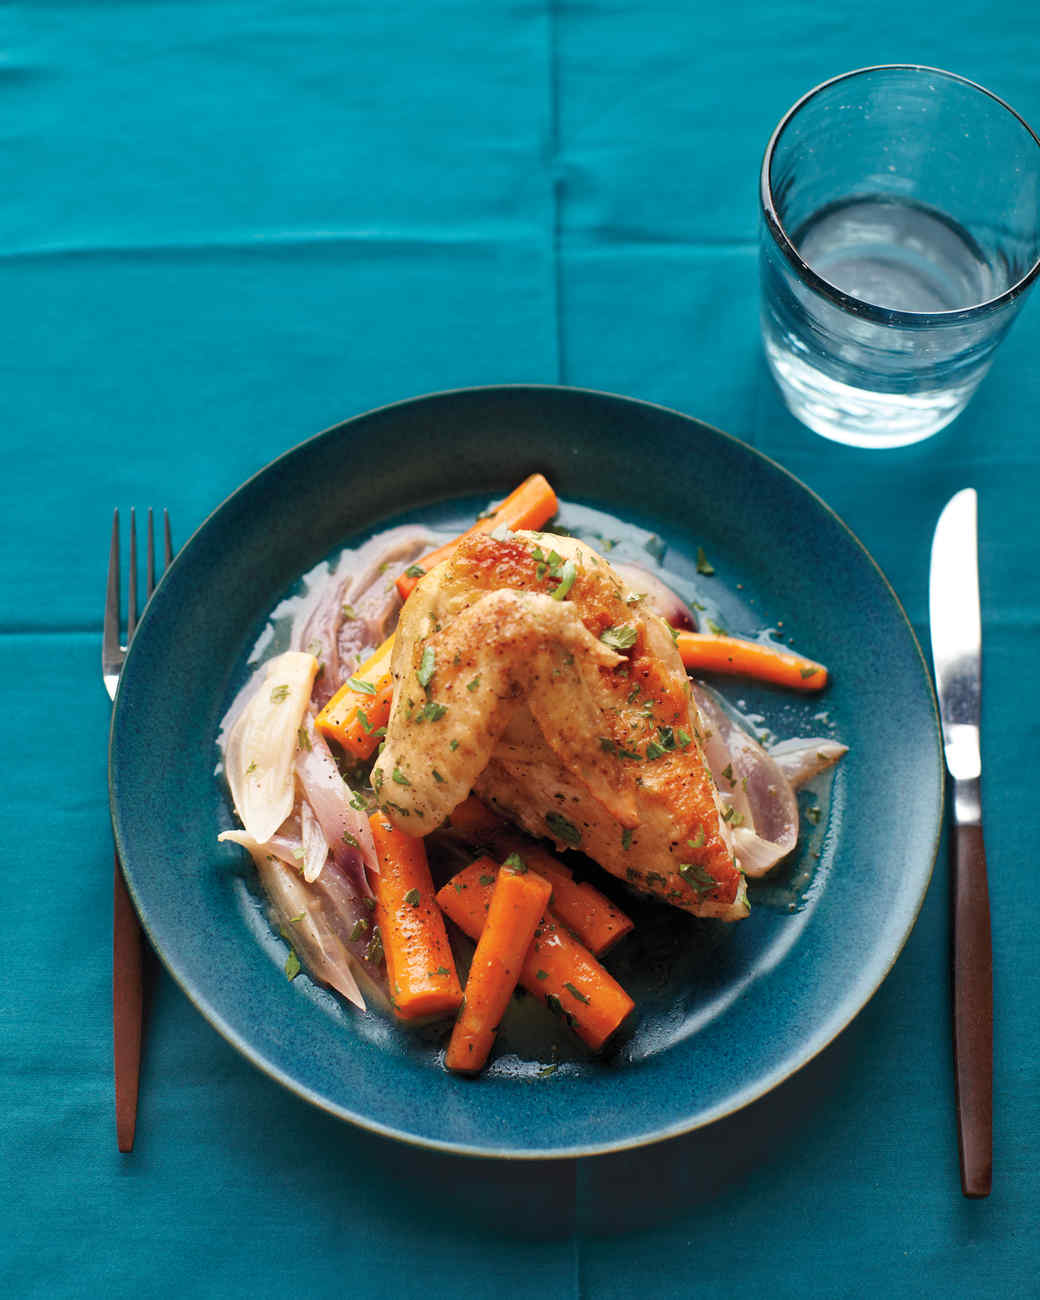 braised-chicken-carrots-onion-med108019.jpg